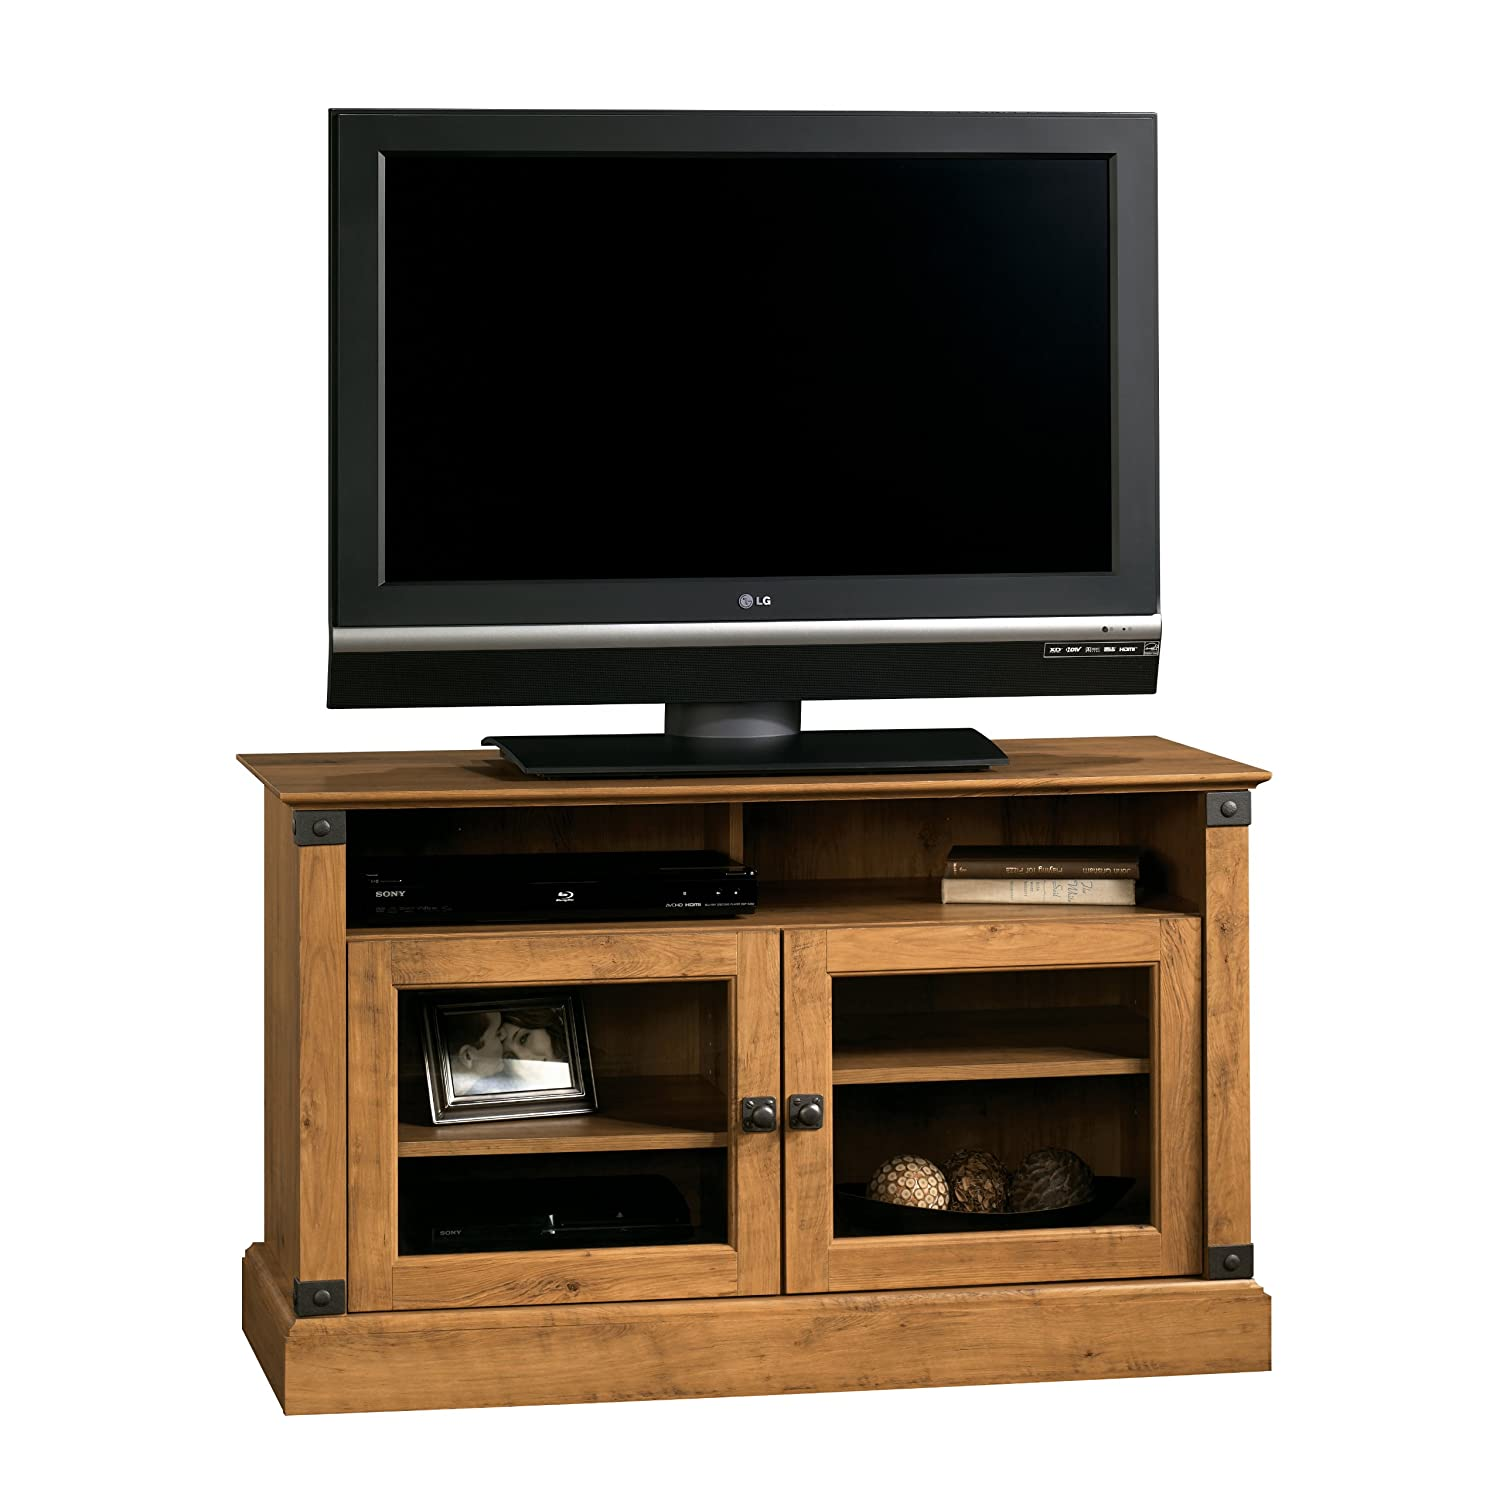 wooden tv stands. Black Bedroom Furniture Sets. Home Design Ideas